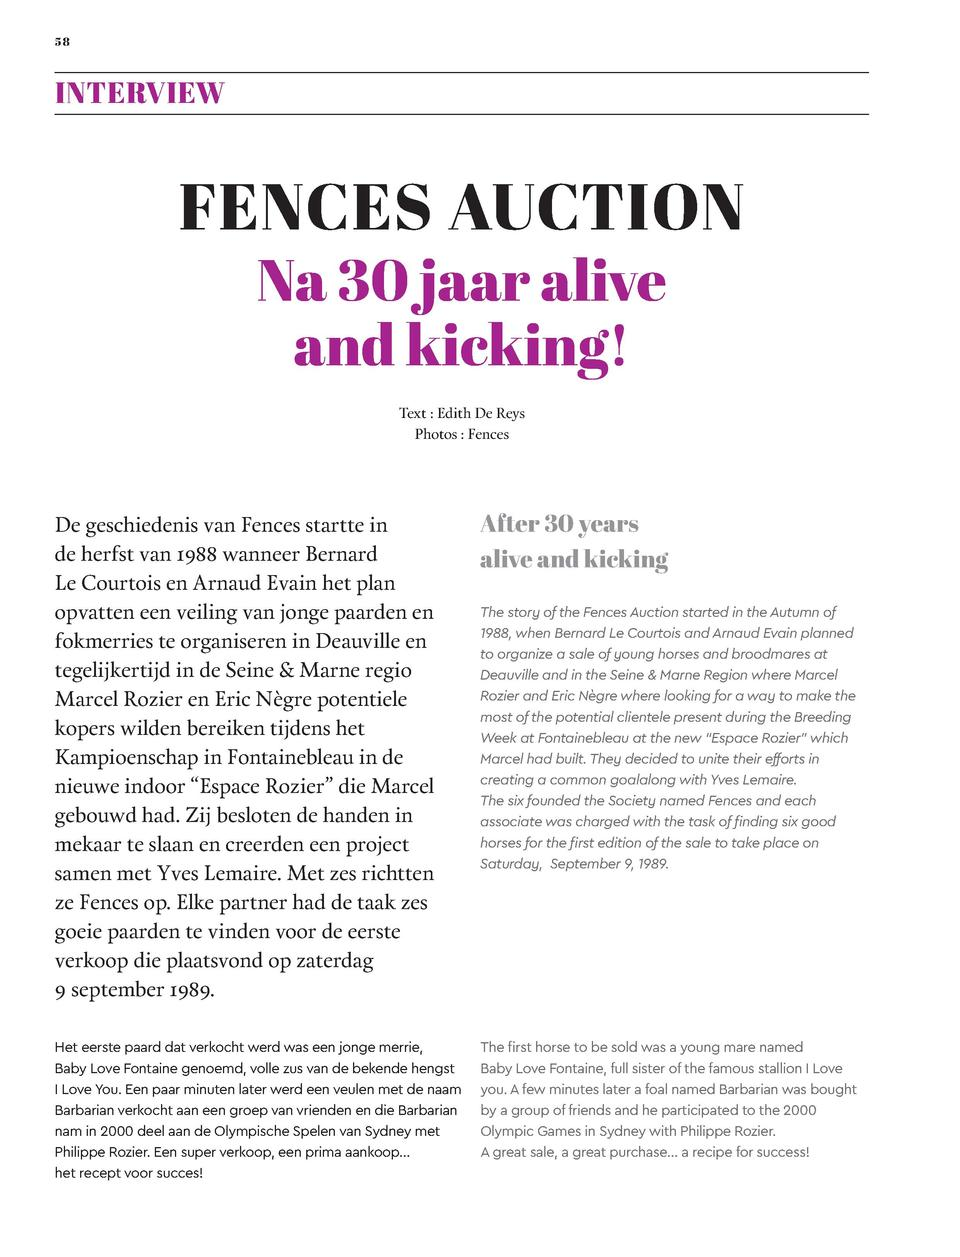 58  INTERVIEW  FENCES AUCTION Na 30 jaar alive and kicking  Text   Edith De Reys Photos   Fences  De geschiedenis van Fenc...